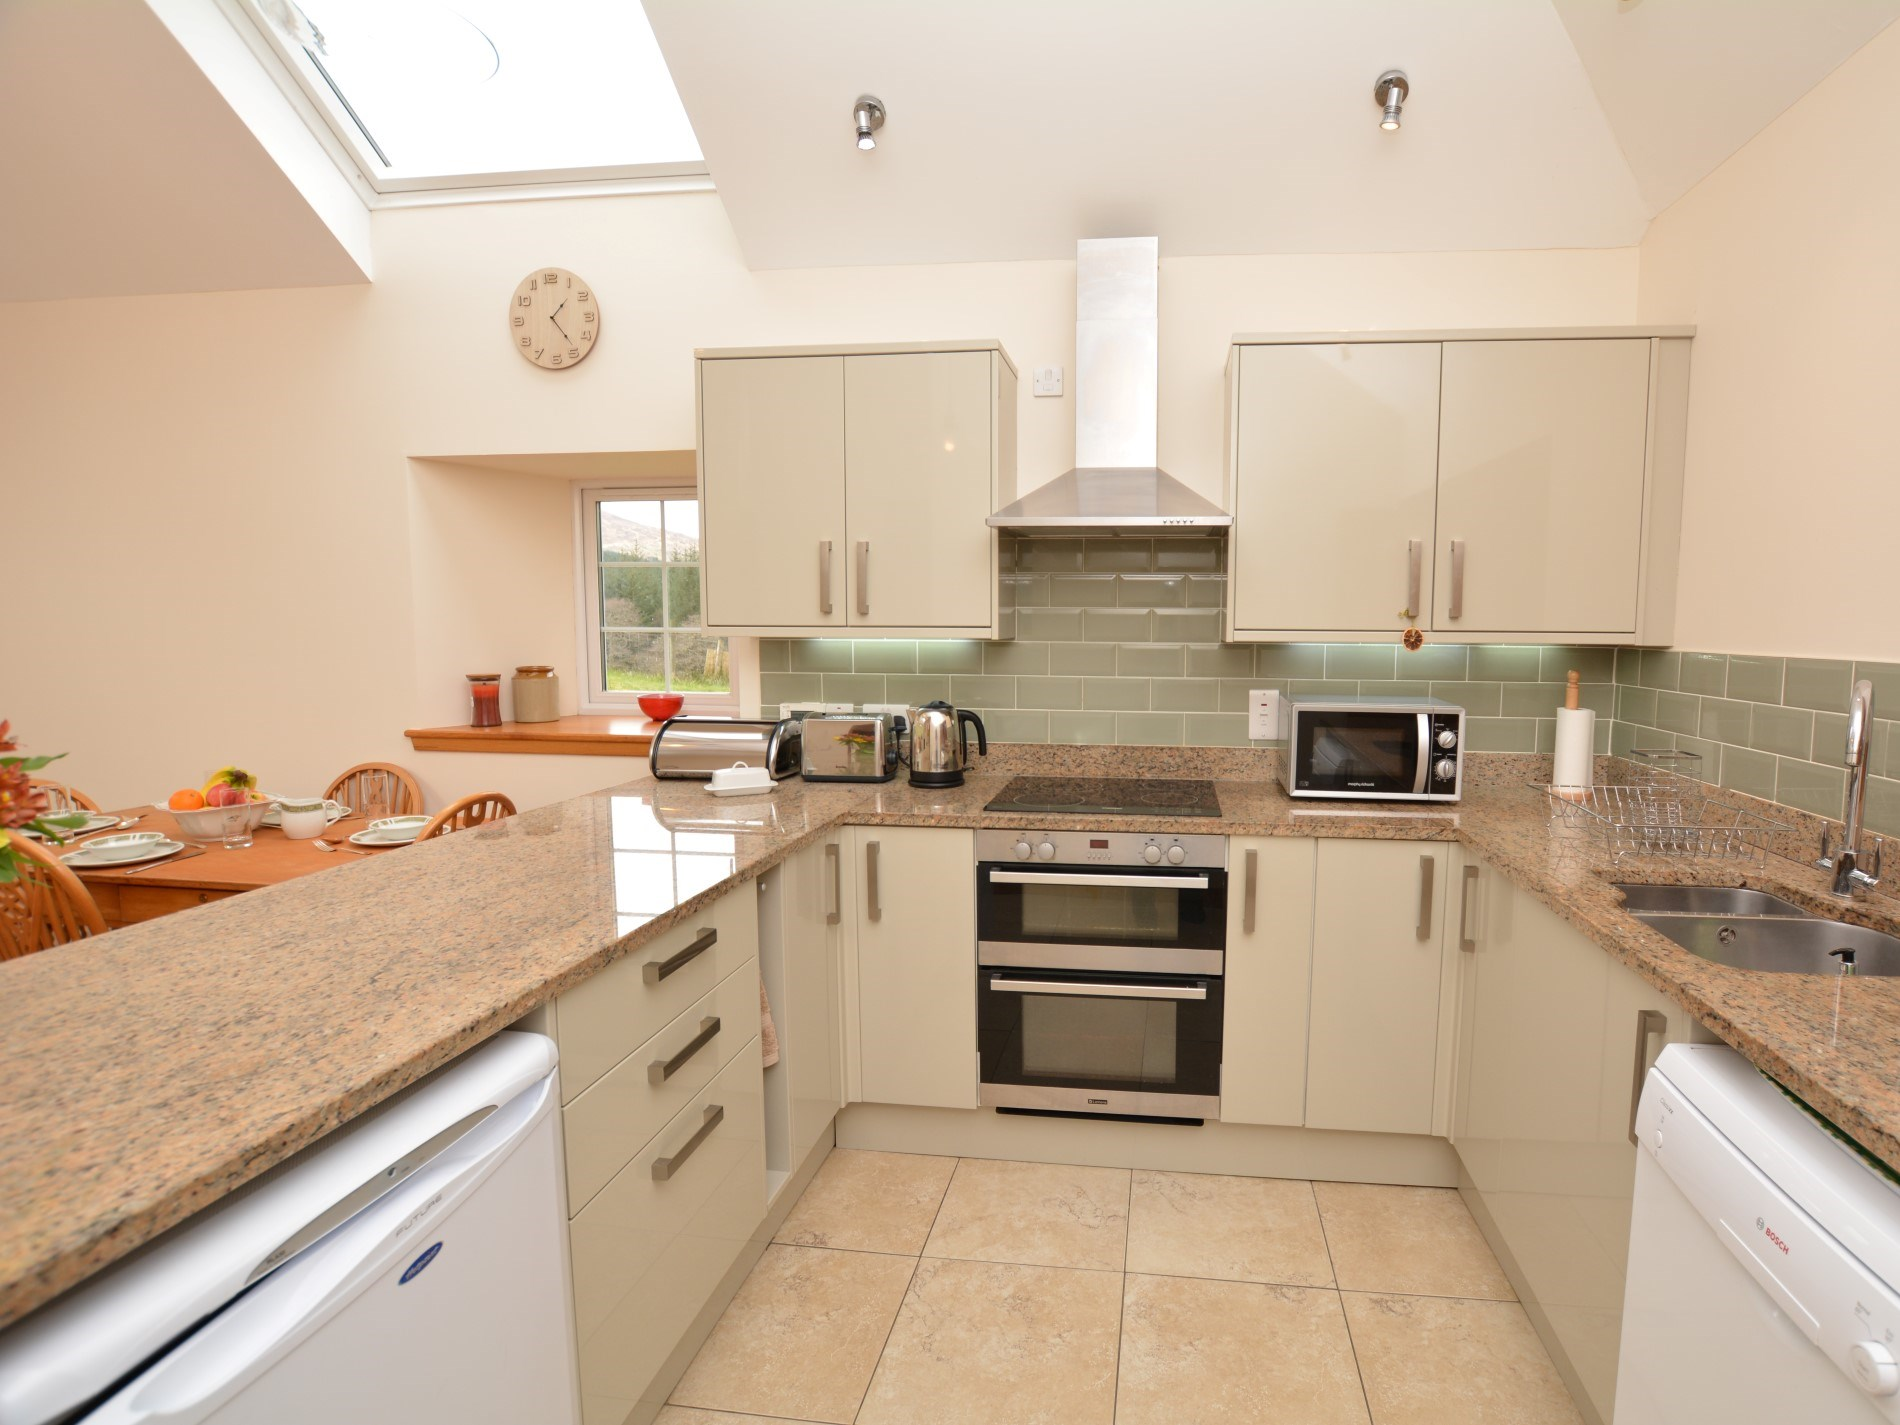 Well-equipped kitchen, perfect for cooking up a storm